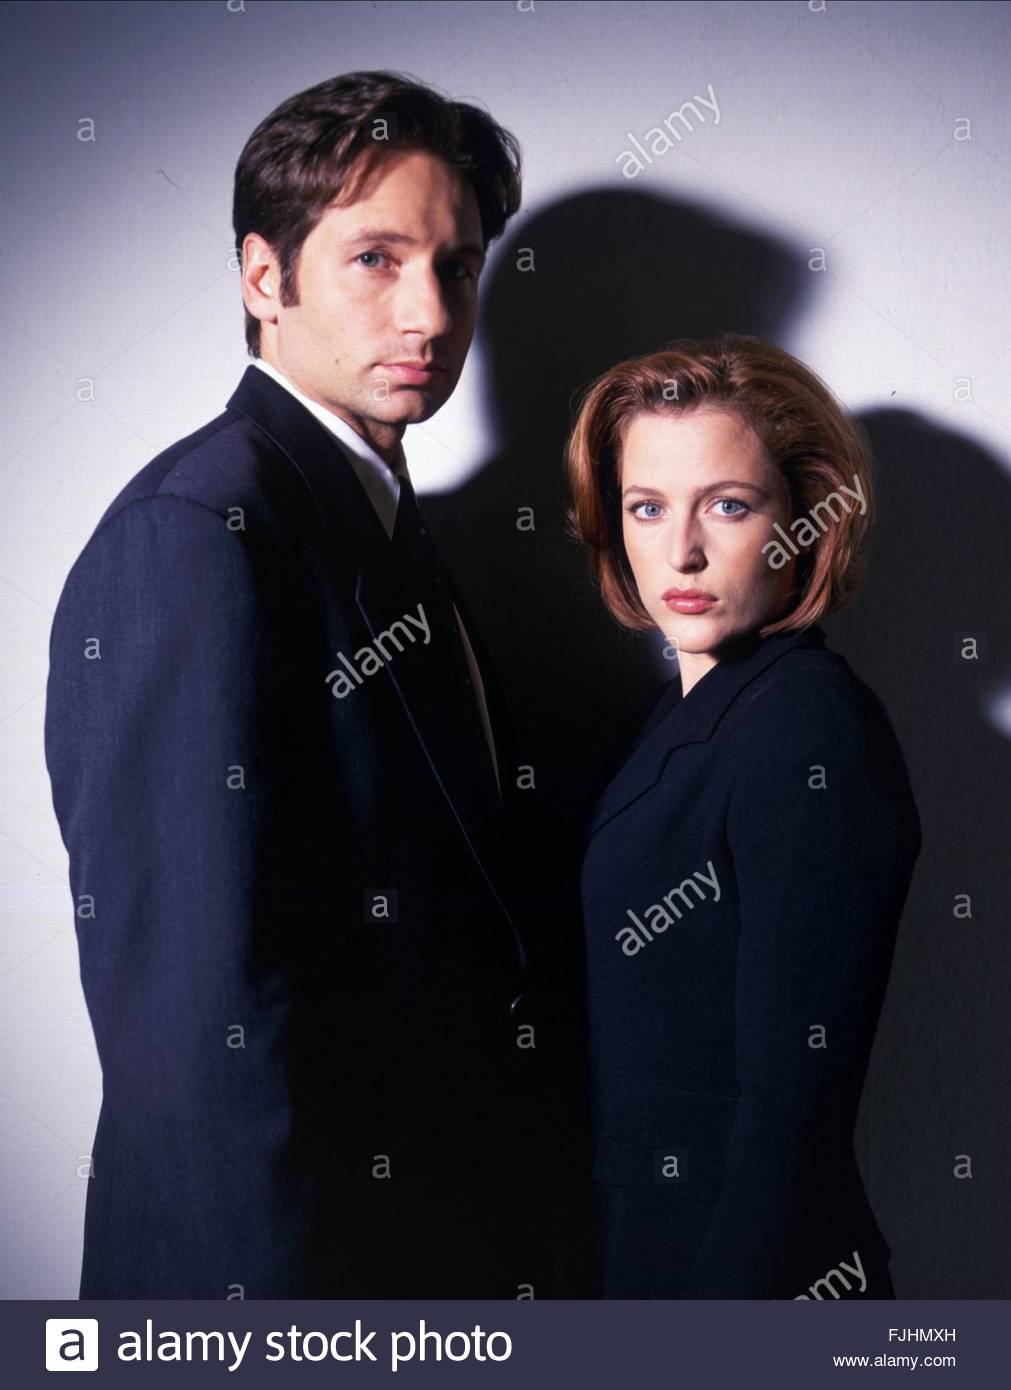 DAVID DUCHOVNY & GILLIAN ANDERSON THE X FILES (1993) - Stock Image